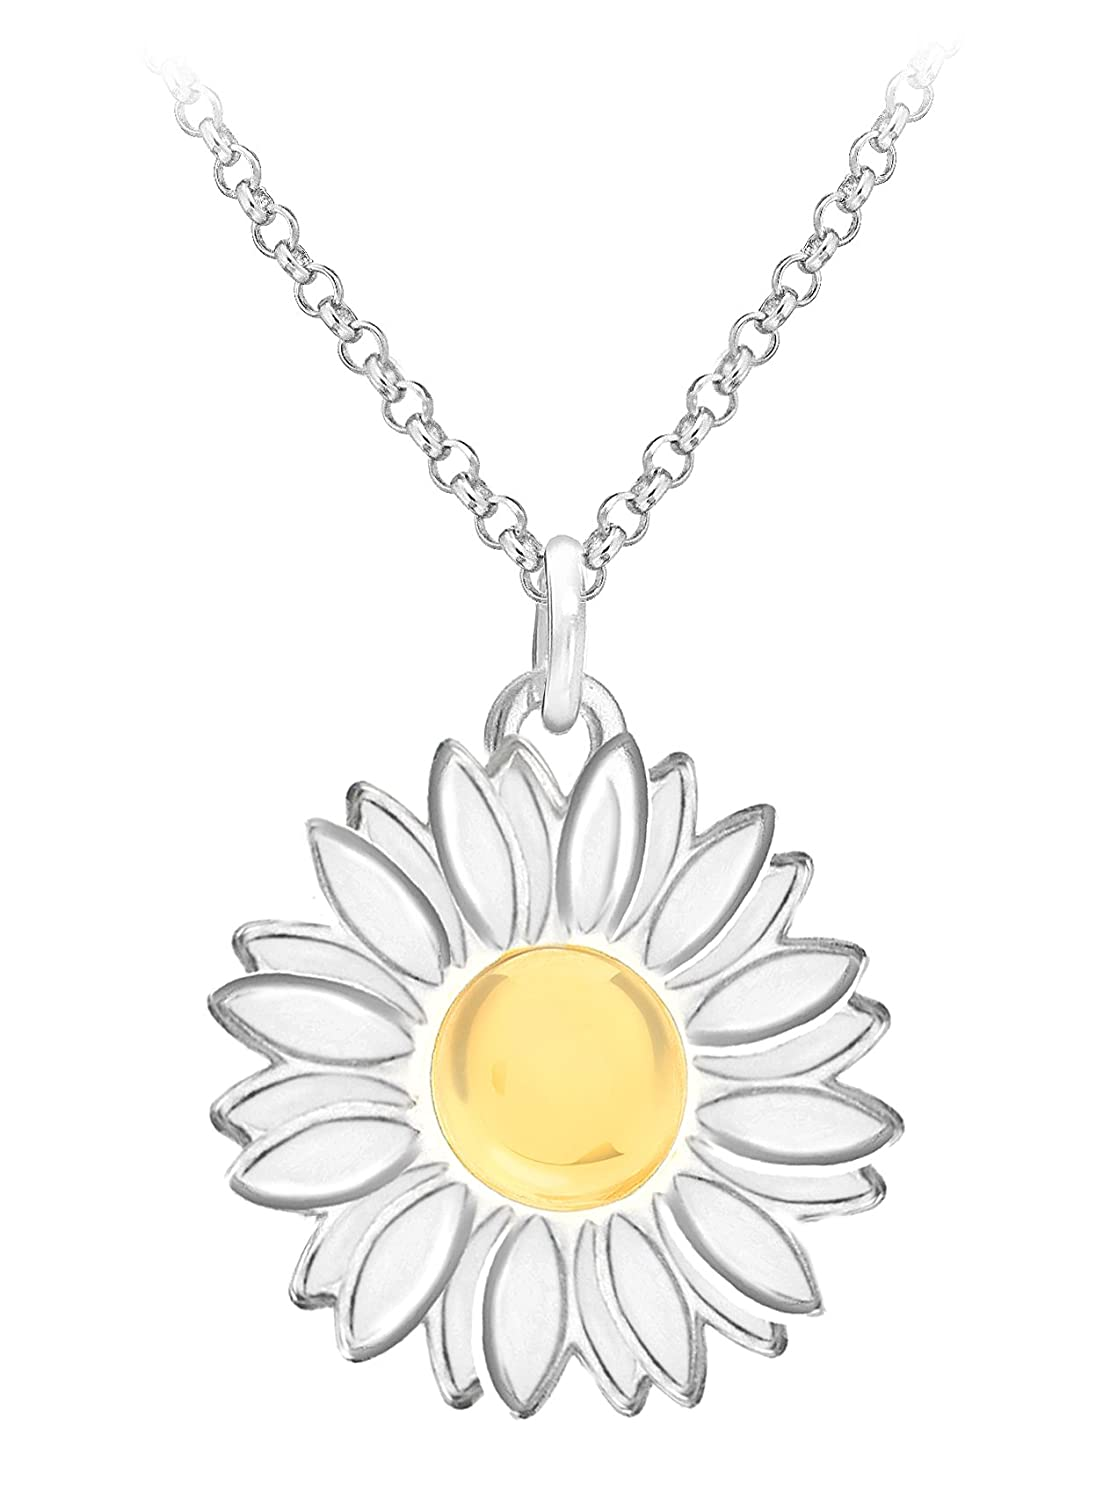 georg pendant sf en silver white daisy pend g and chain epages gb rhodinated jensen